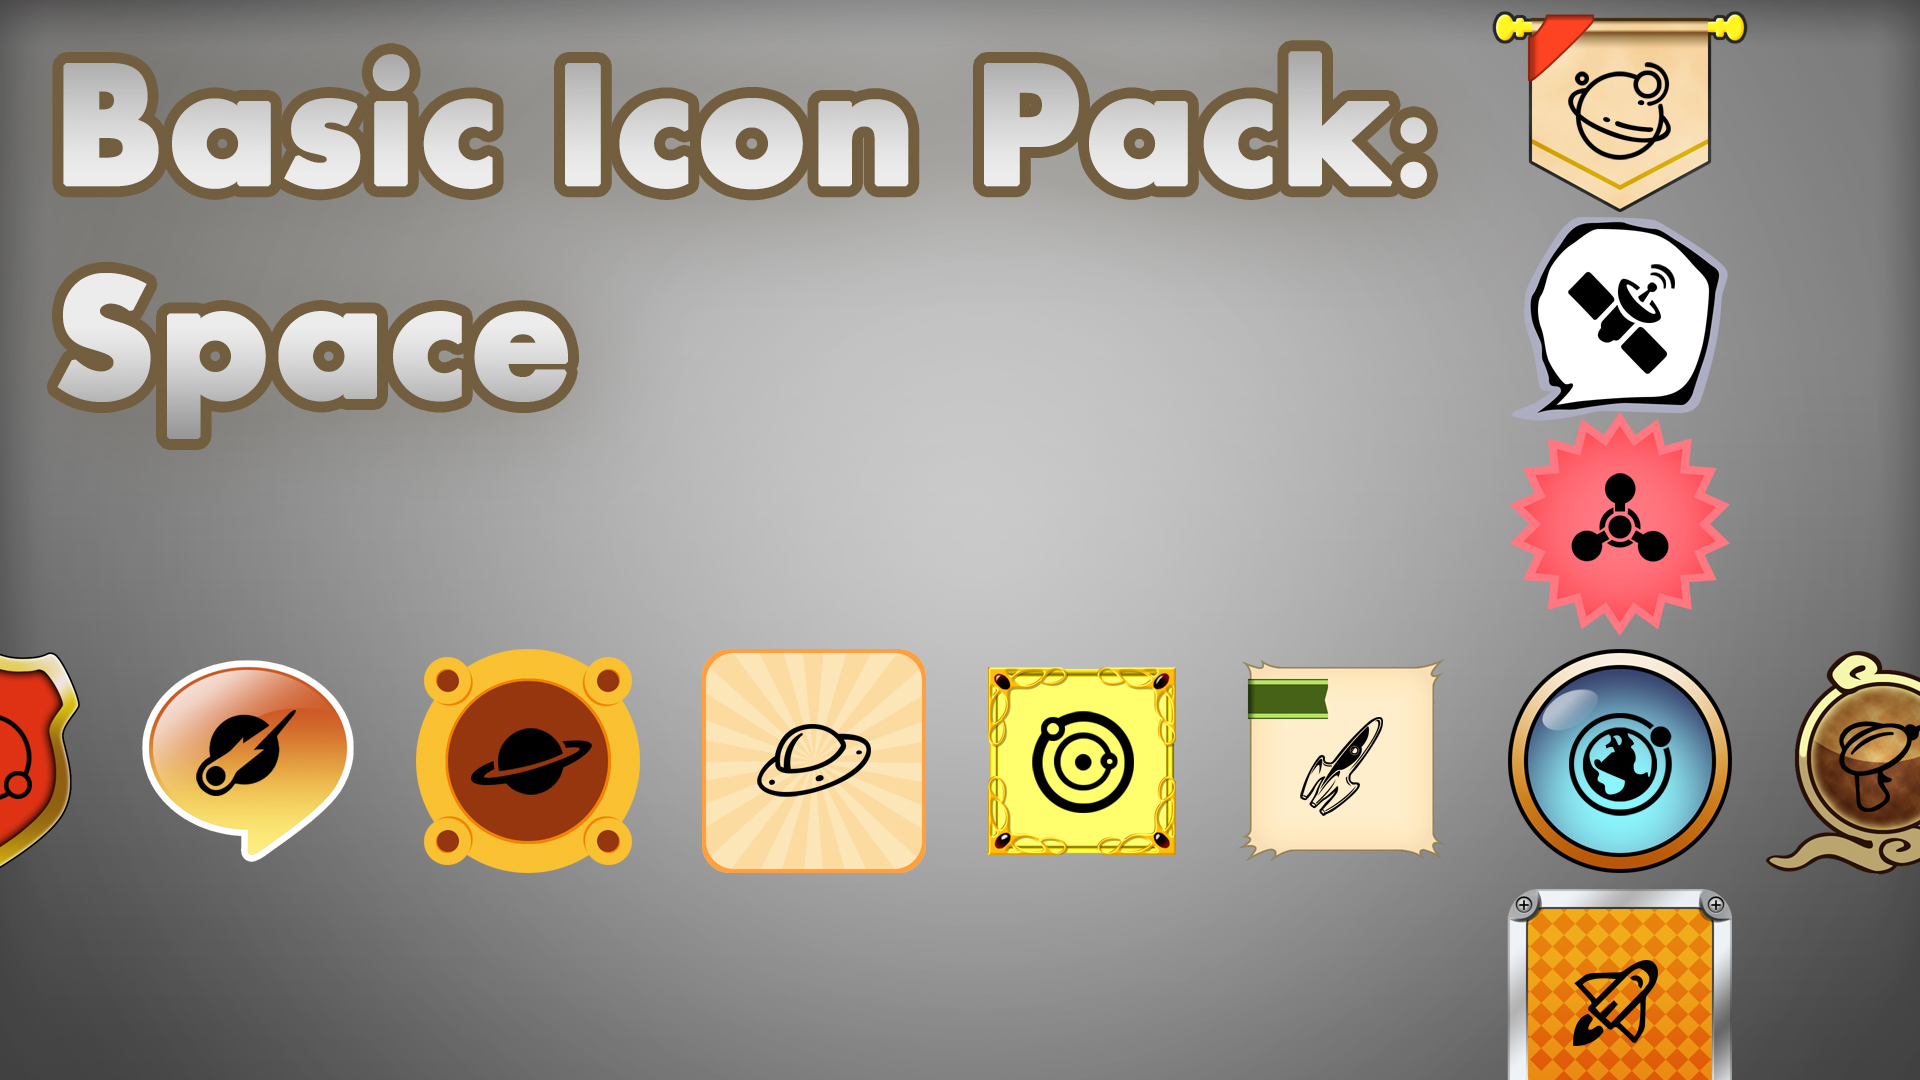 Icon Pack: Space by Knobbynobbes in 2D Assets - UE4 Marketplace